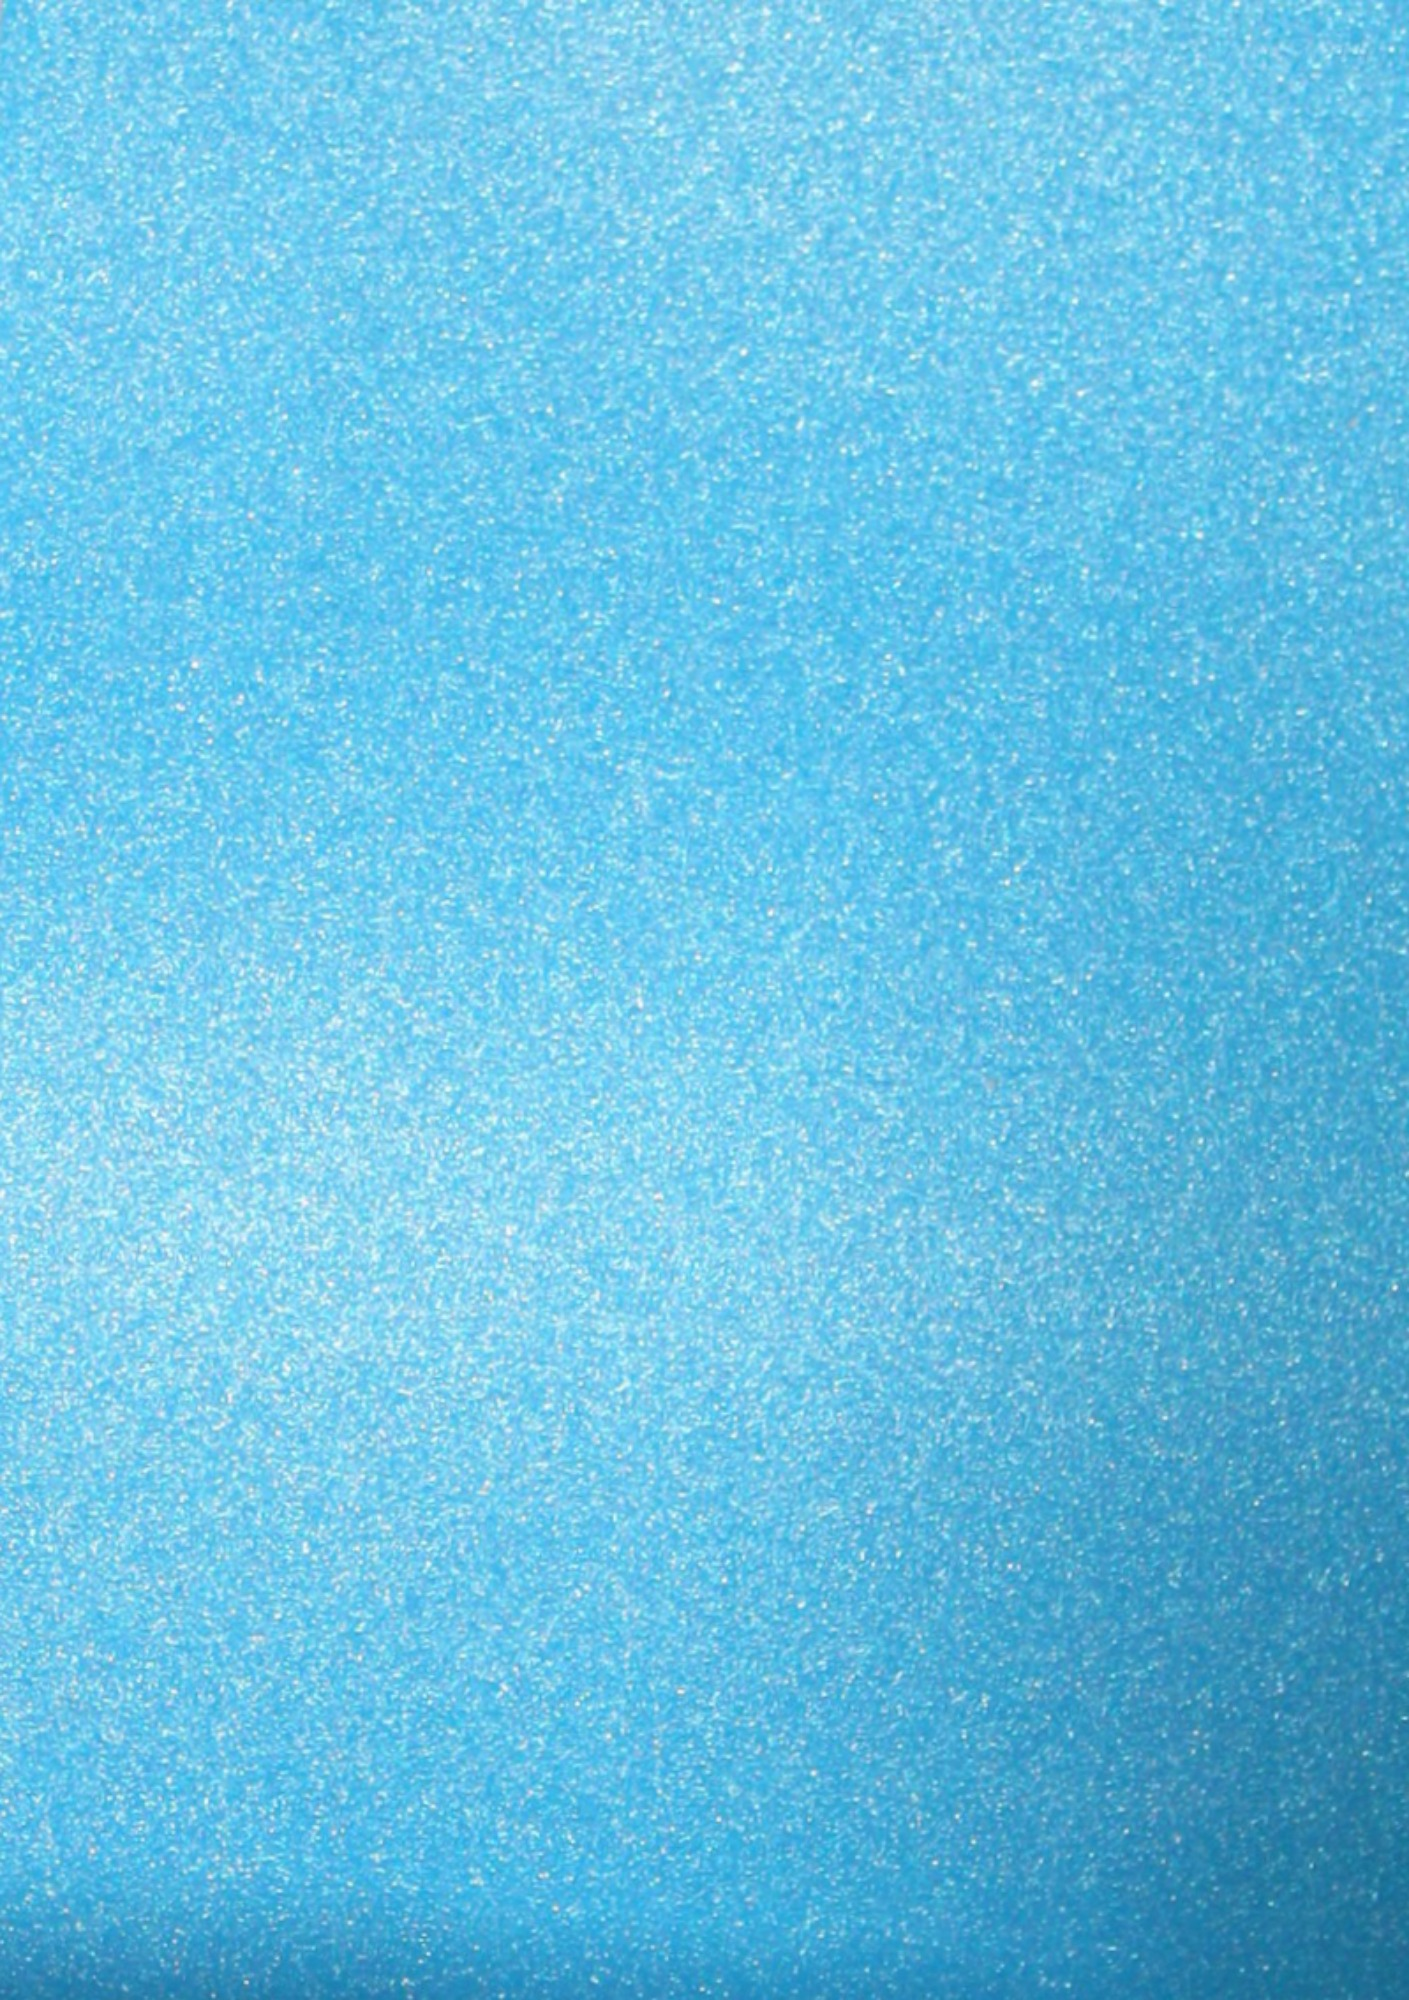 free stock photo of background blue glitter